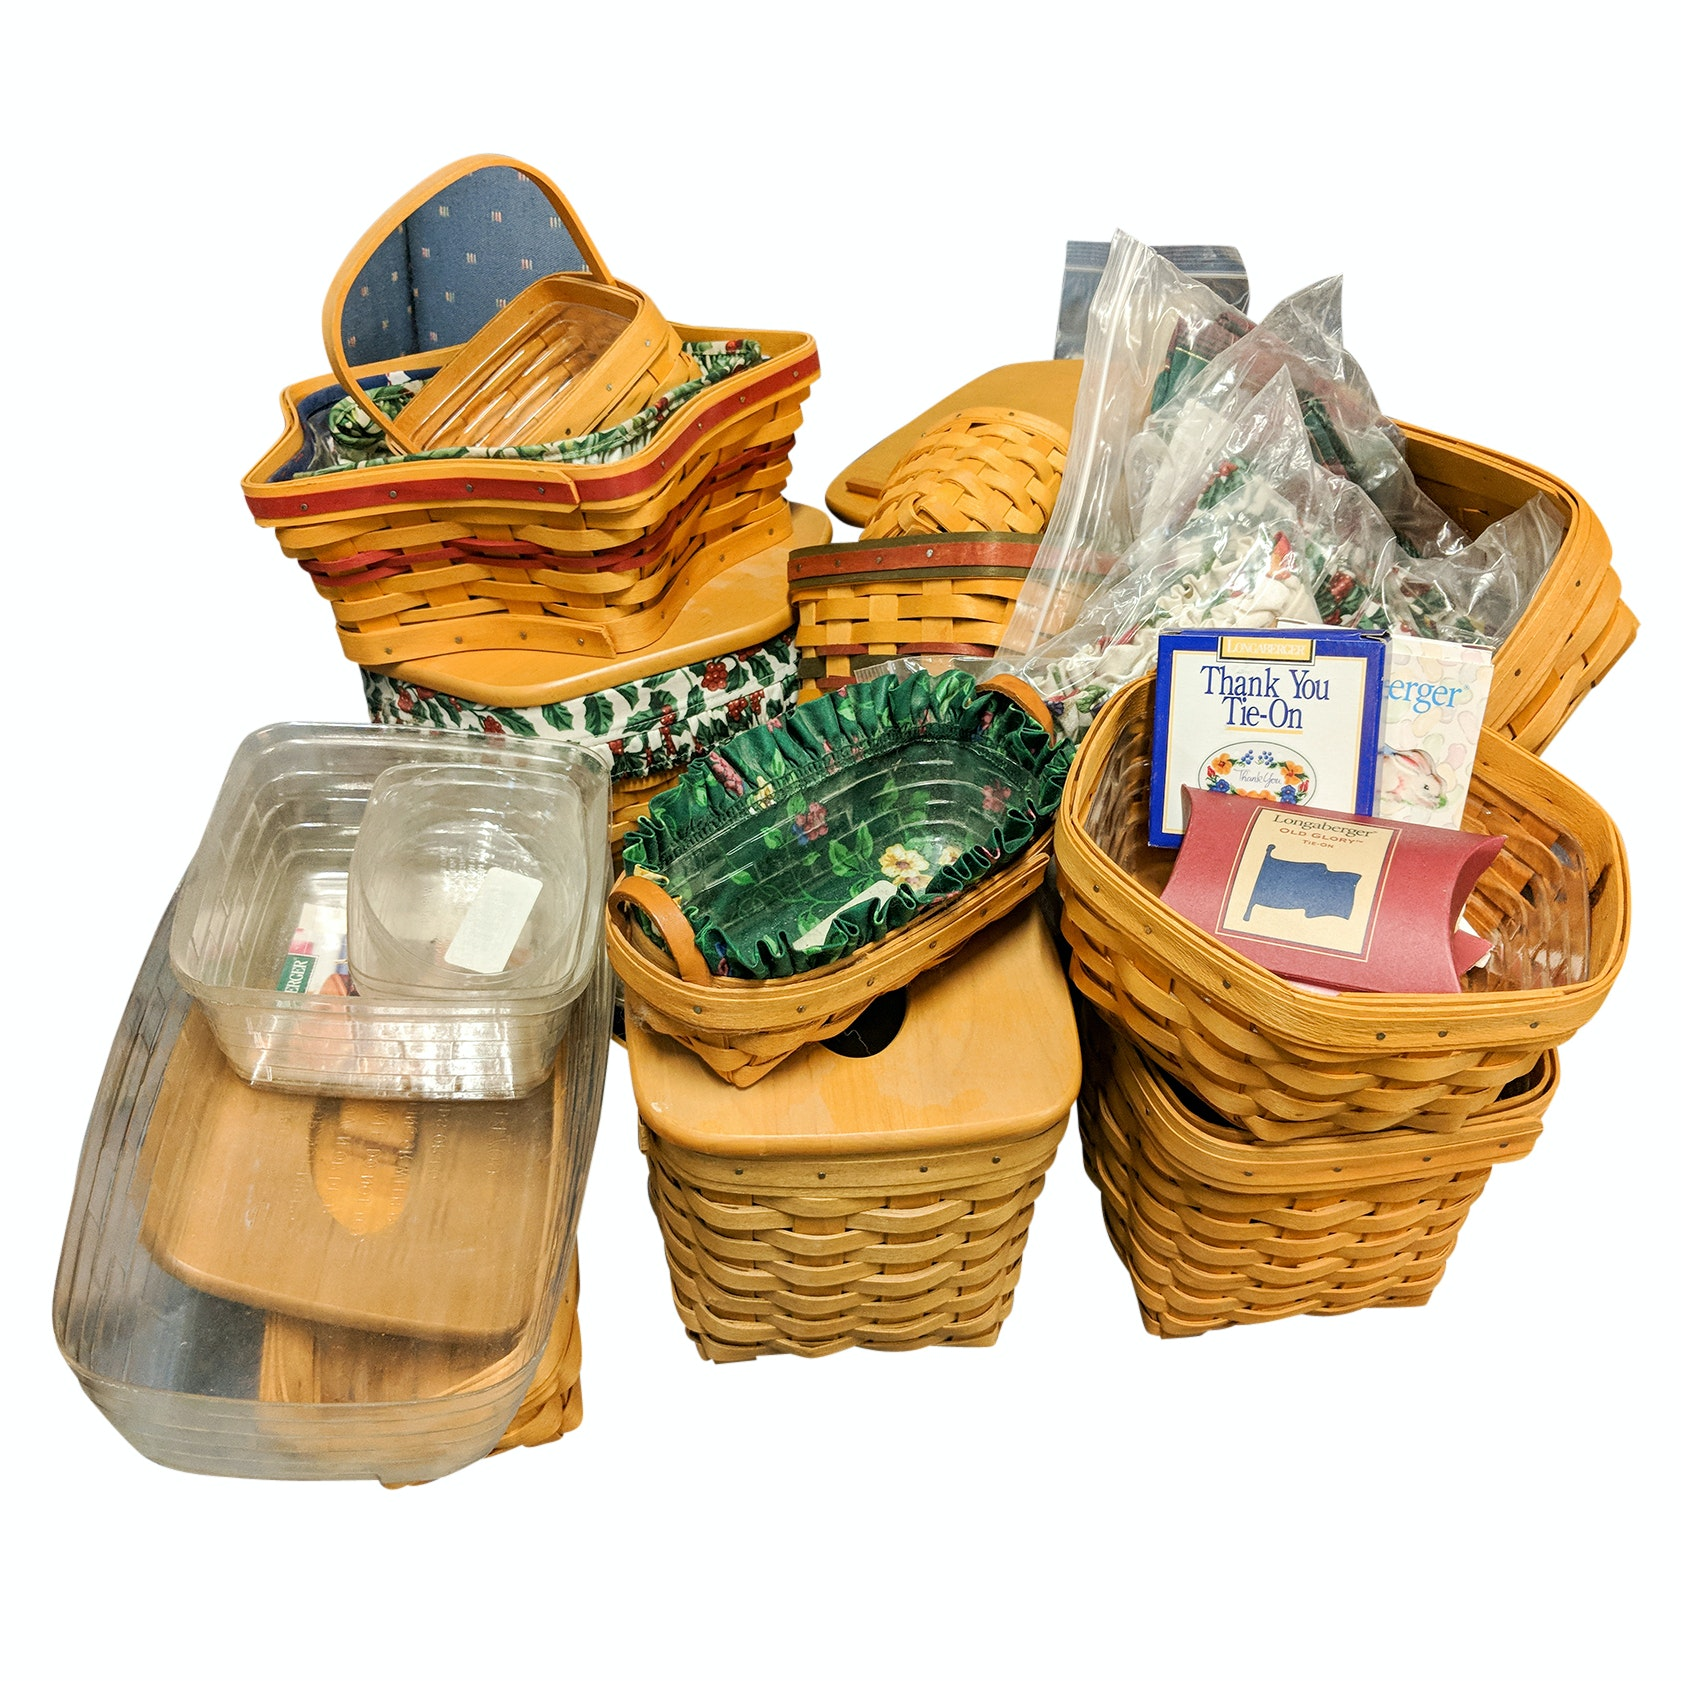 Longaberger Handwoven Baskets, Tags and Liners